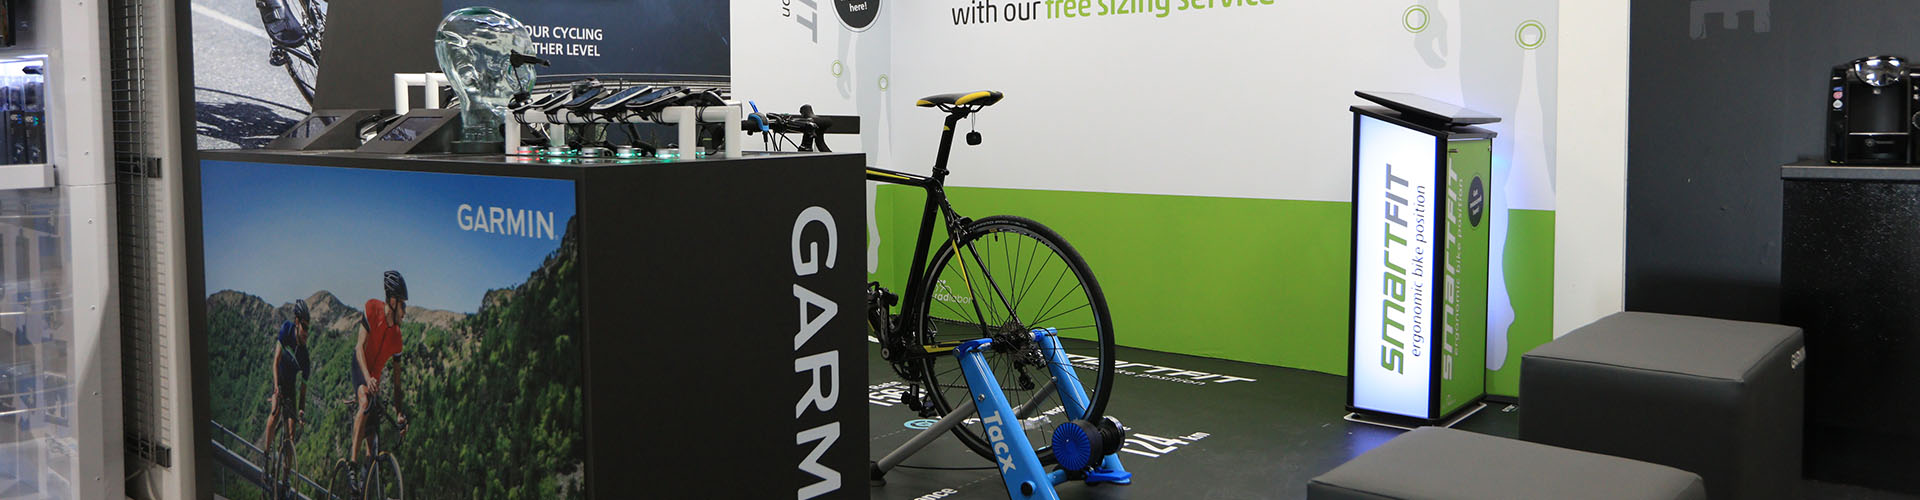 garmin-bike-demo.jpg